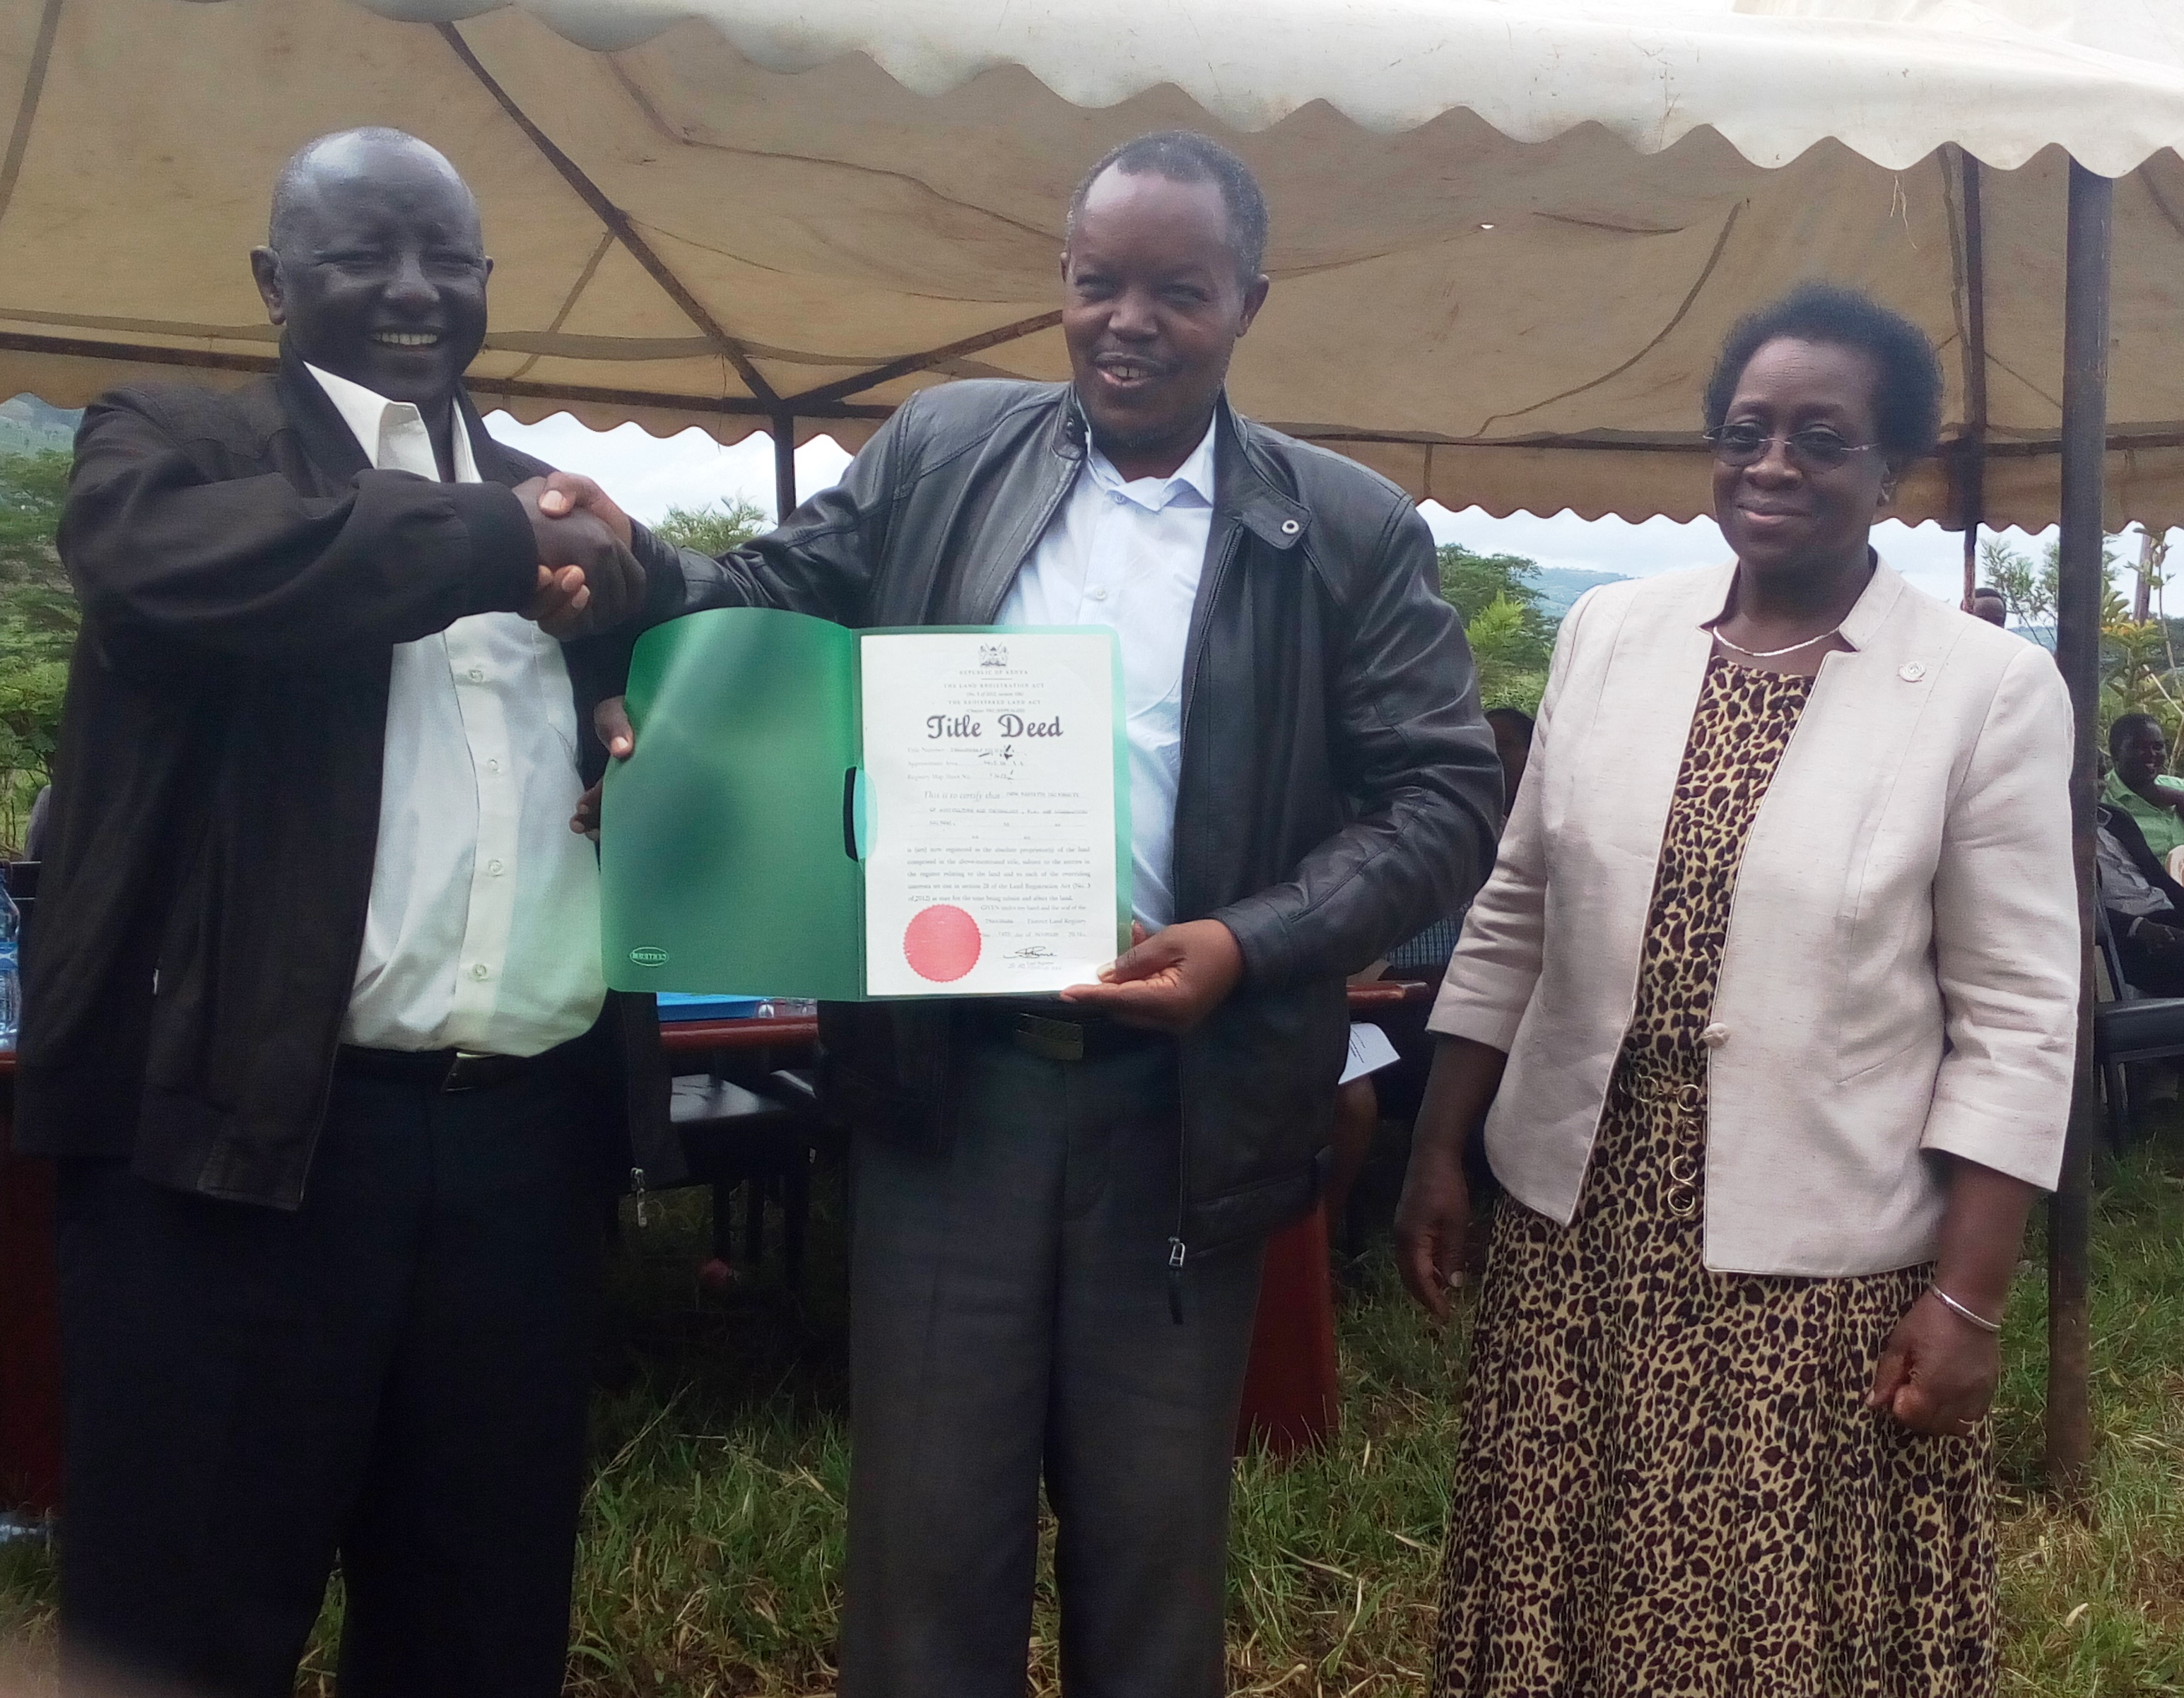 Council Chair Prof. Kanyari receives the Title Deed as Prof. Imbuga looks on.